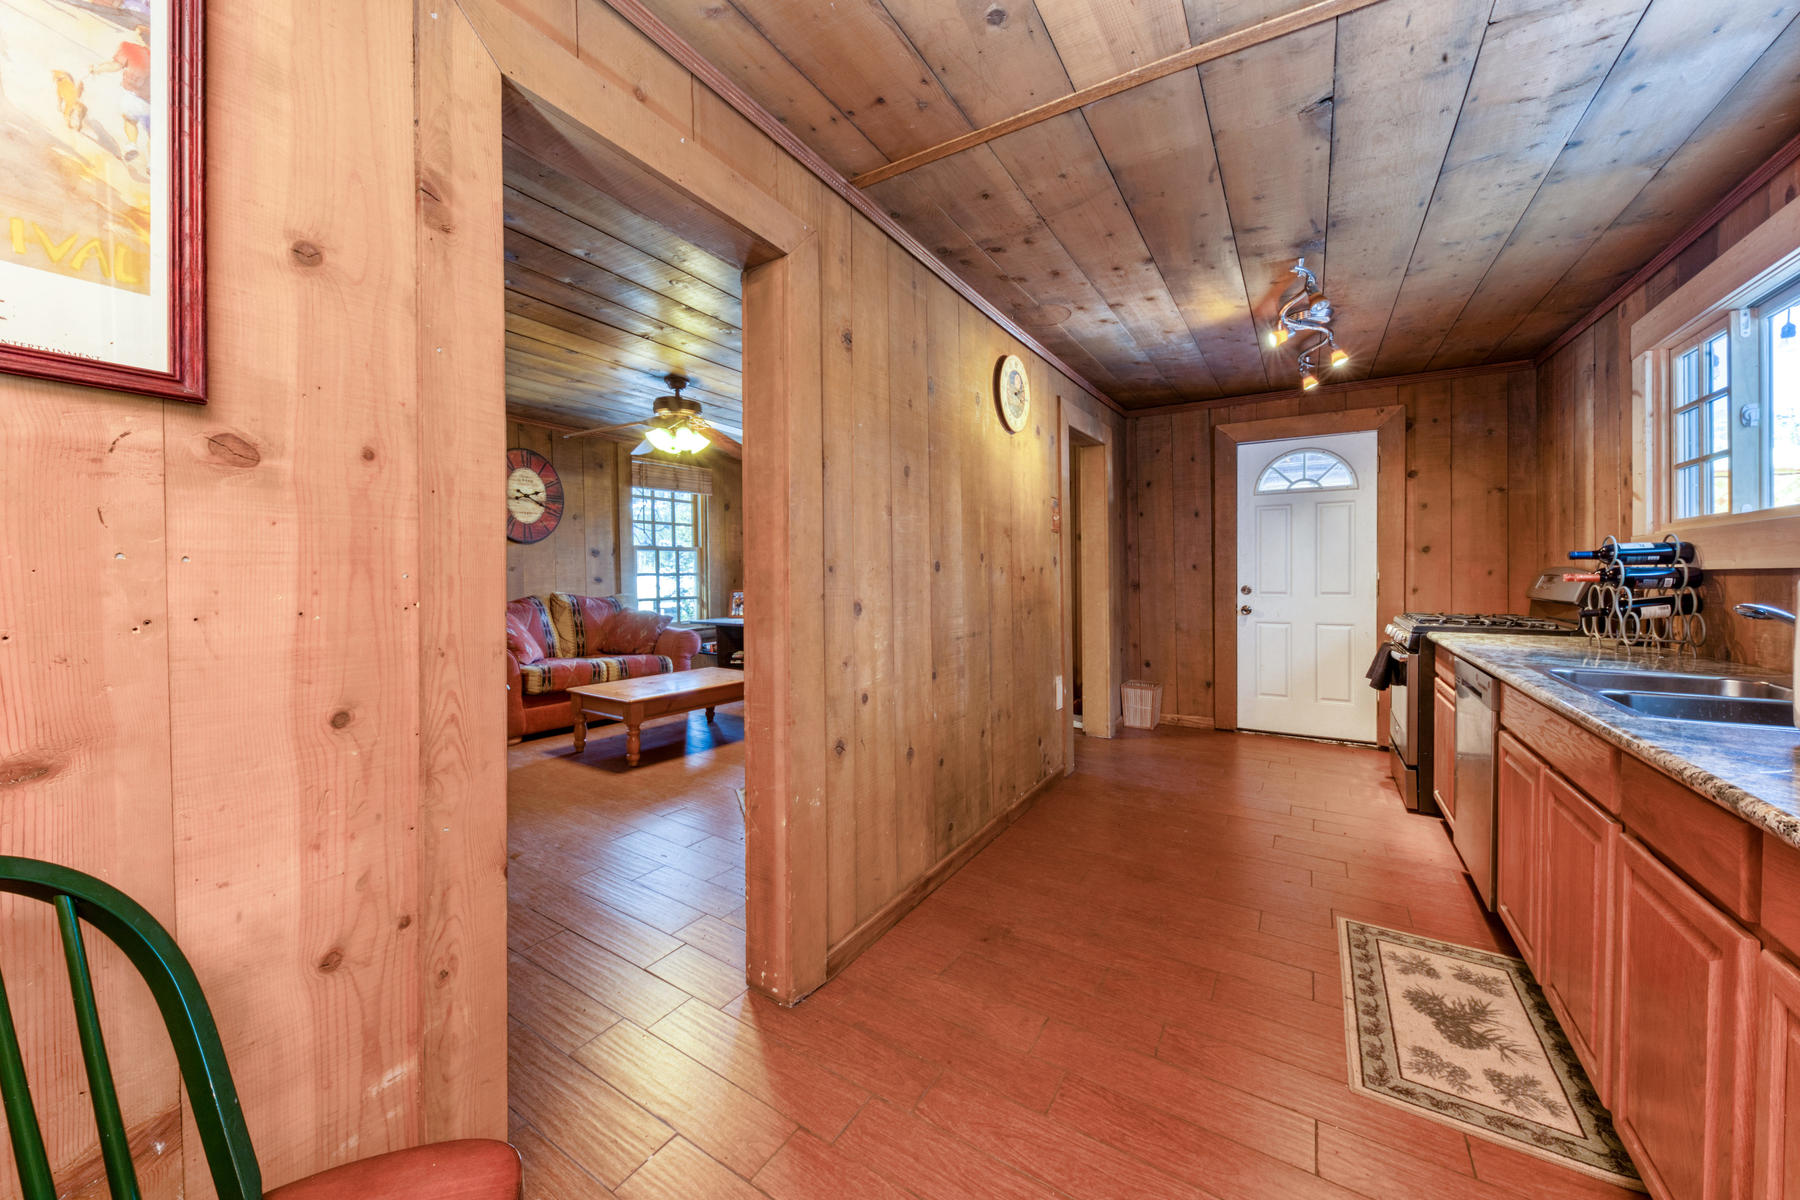 Additional photo for property listing at 25 S Yuba Drive, Soda Springs, CA 25 S Yuba Drive Soda Springs, California 95715 United States